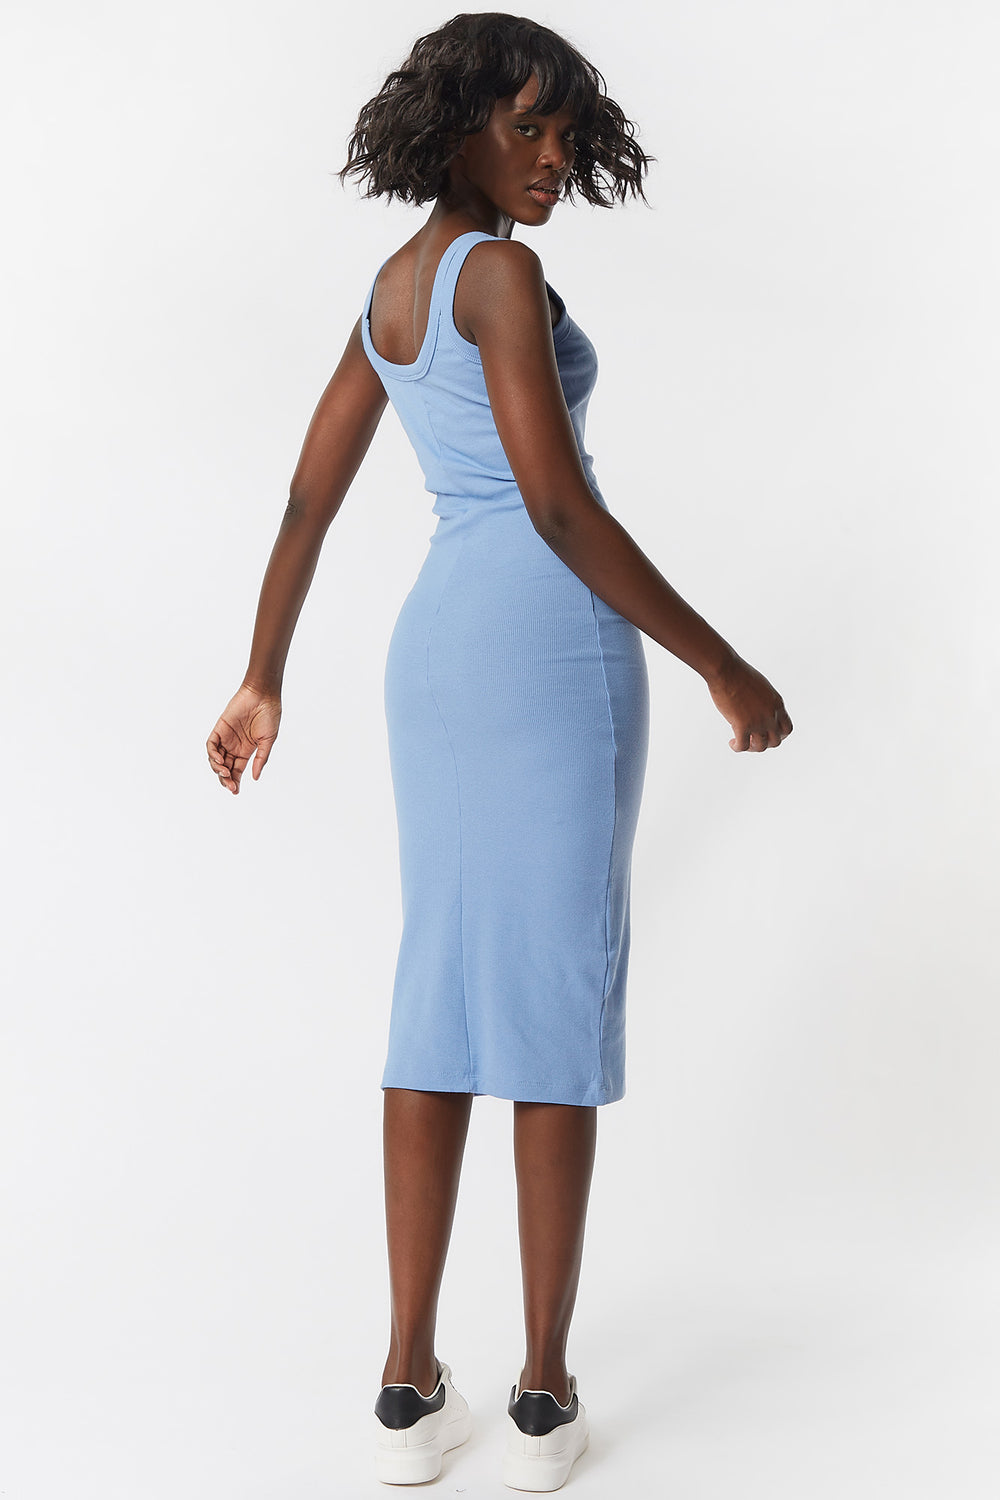 Double Strap Scoop Neck Midi Dress Light Blue